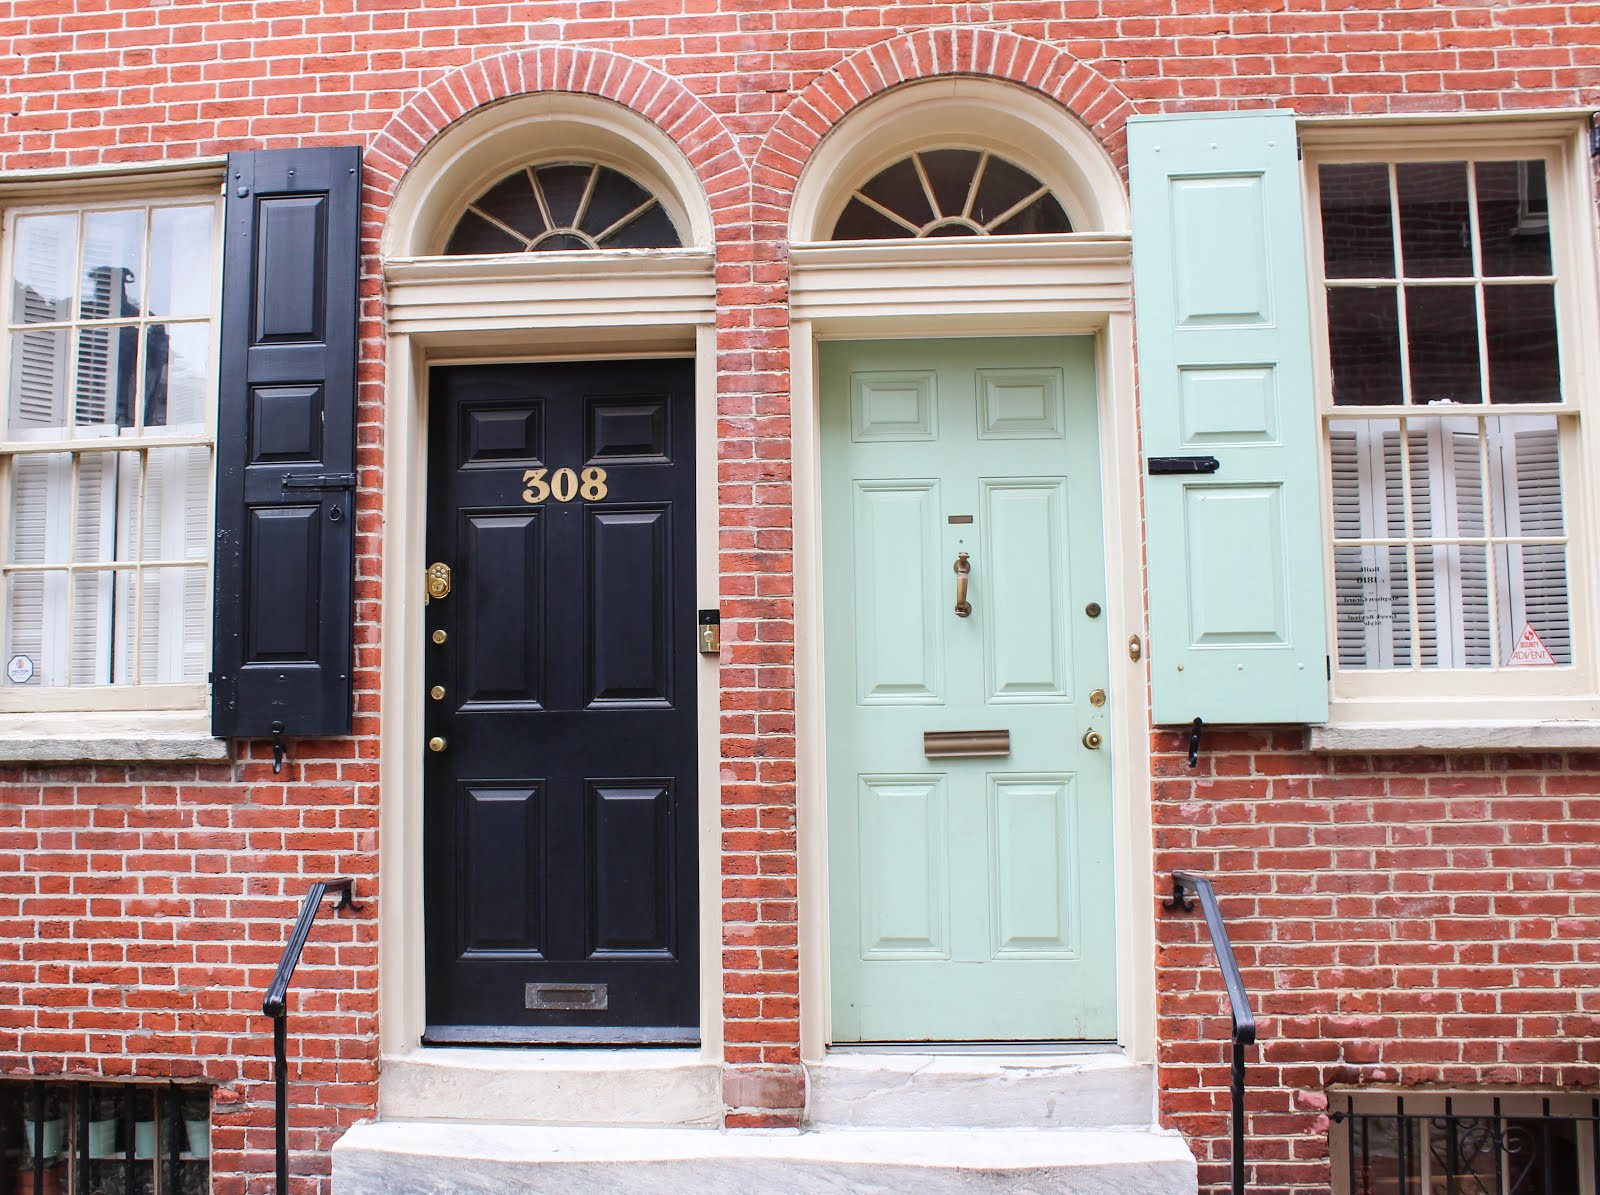 ... doors and exteriors from last weekend wandering around Philly. Whether you\u0027re giving your home a spring makeover or just imaging your someday house ... & DOORS OF PHILLY | My Darling Passport